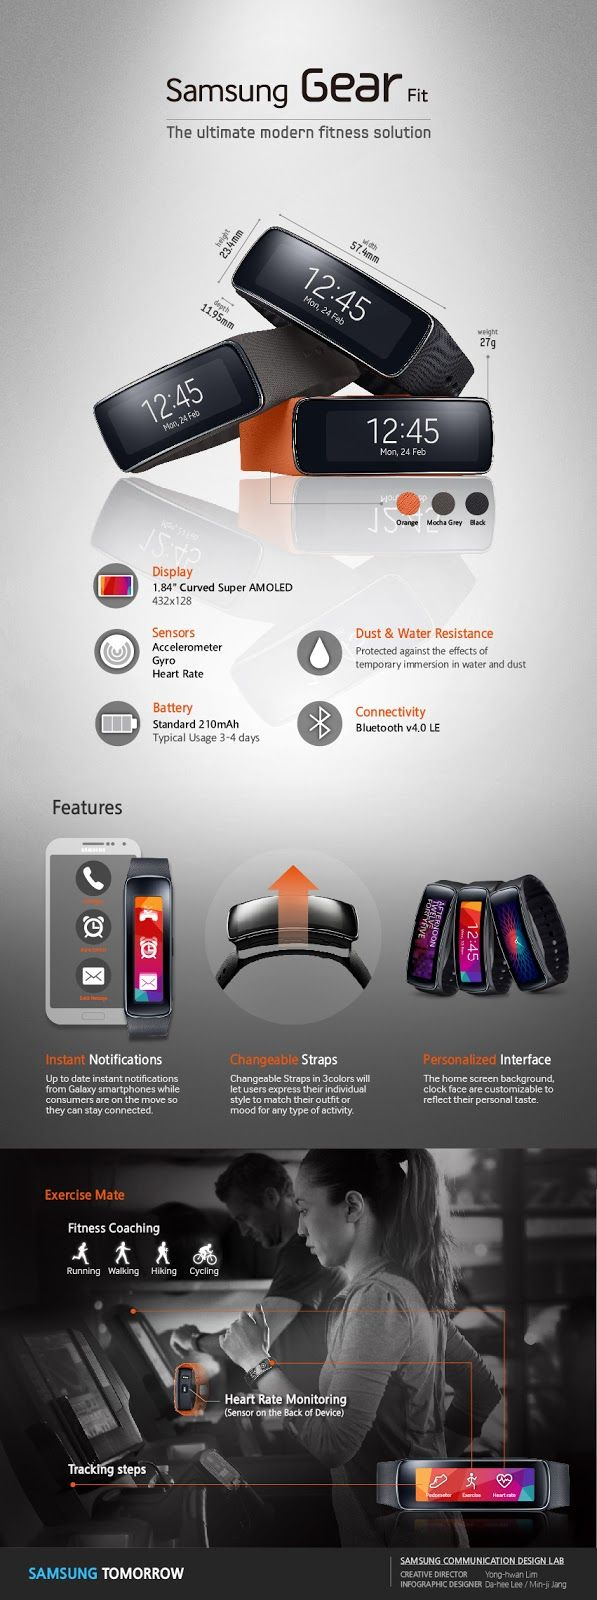 Samsung Gear Fit + Infographic | Samsung City | cynthia reccord